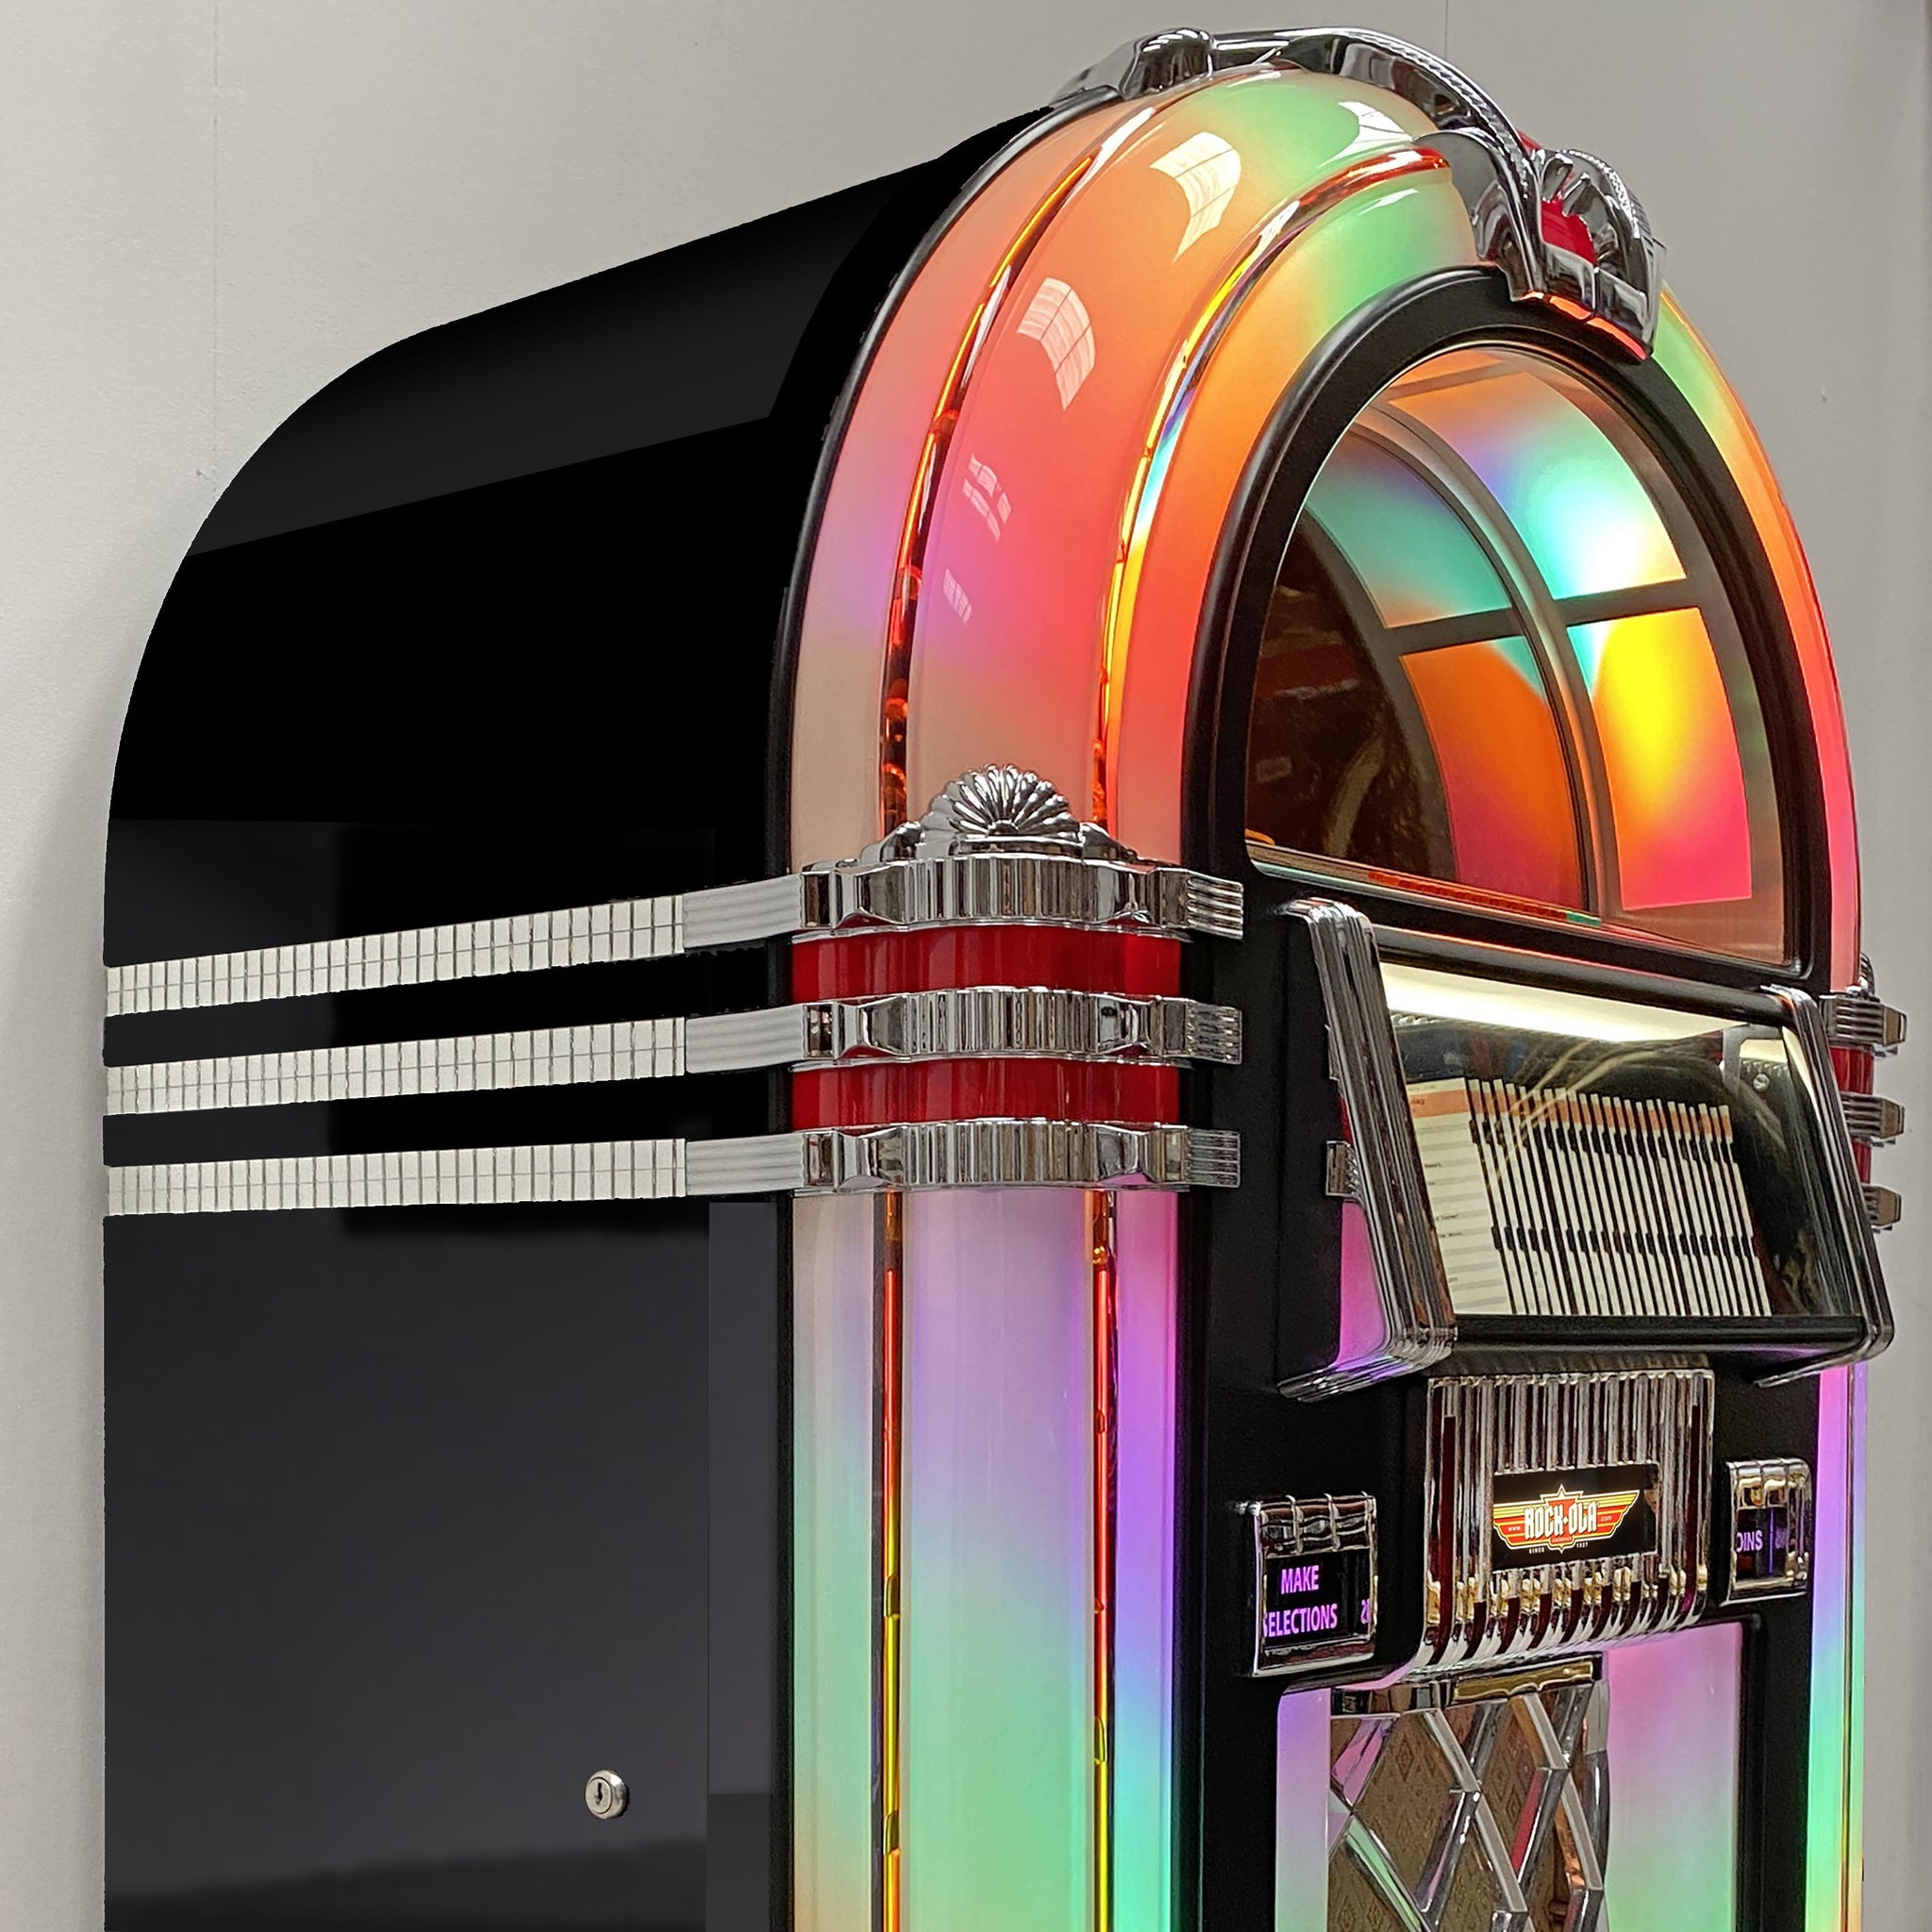 Rock-Ola Bubbler CD Jukebox in Gloss Black